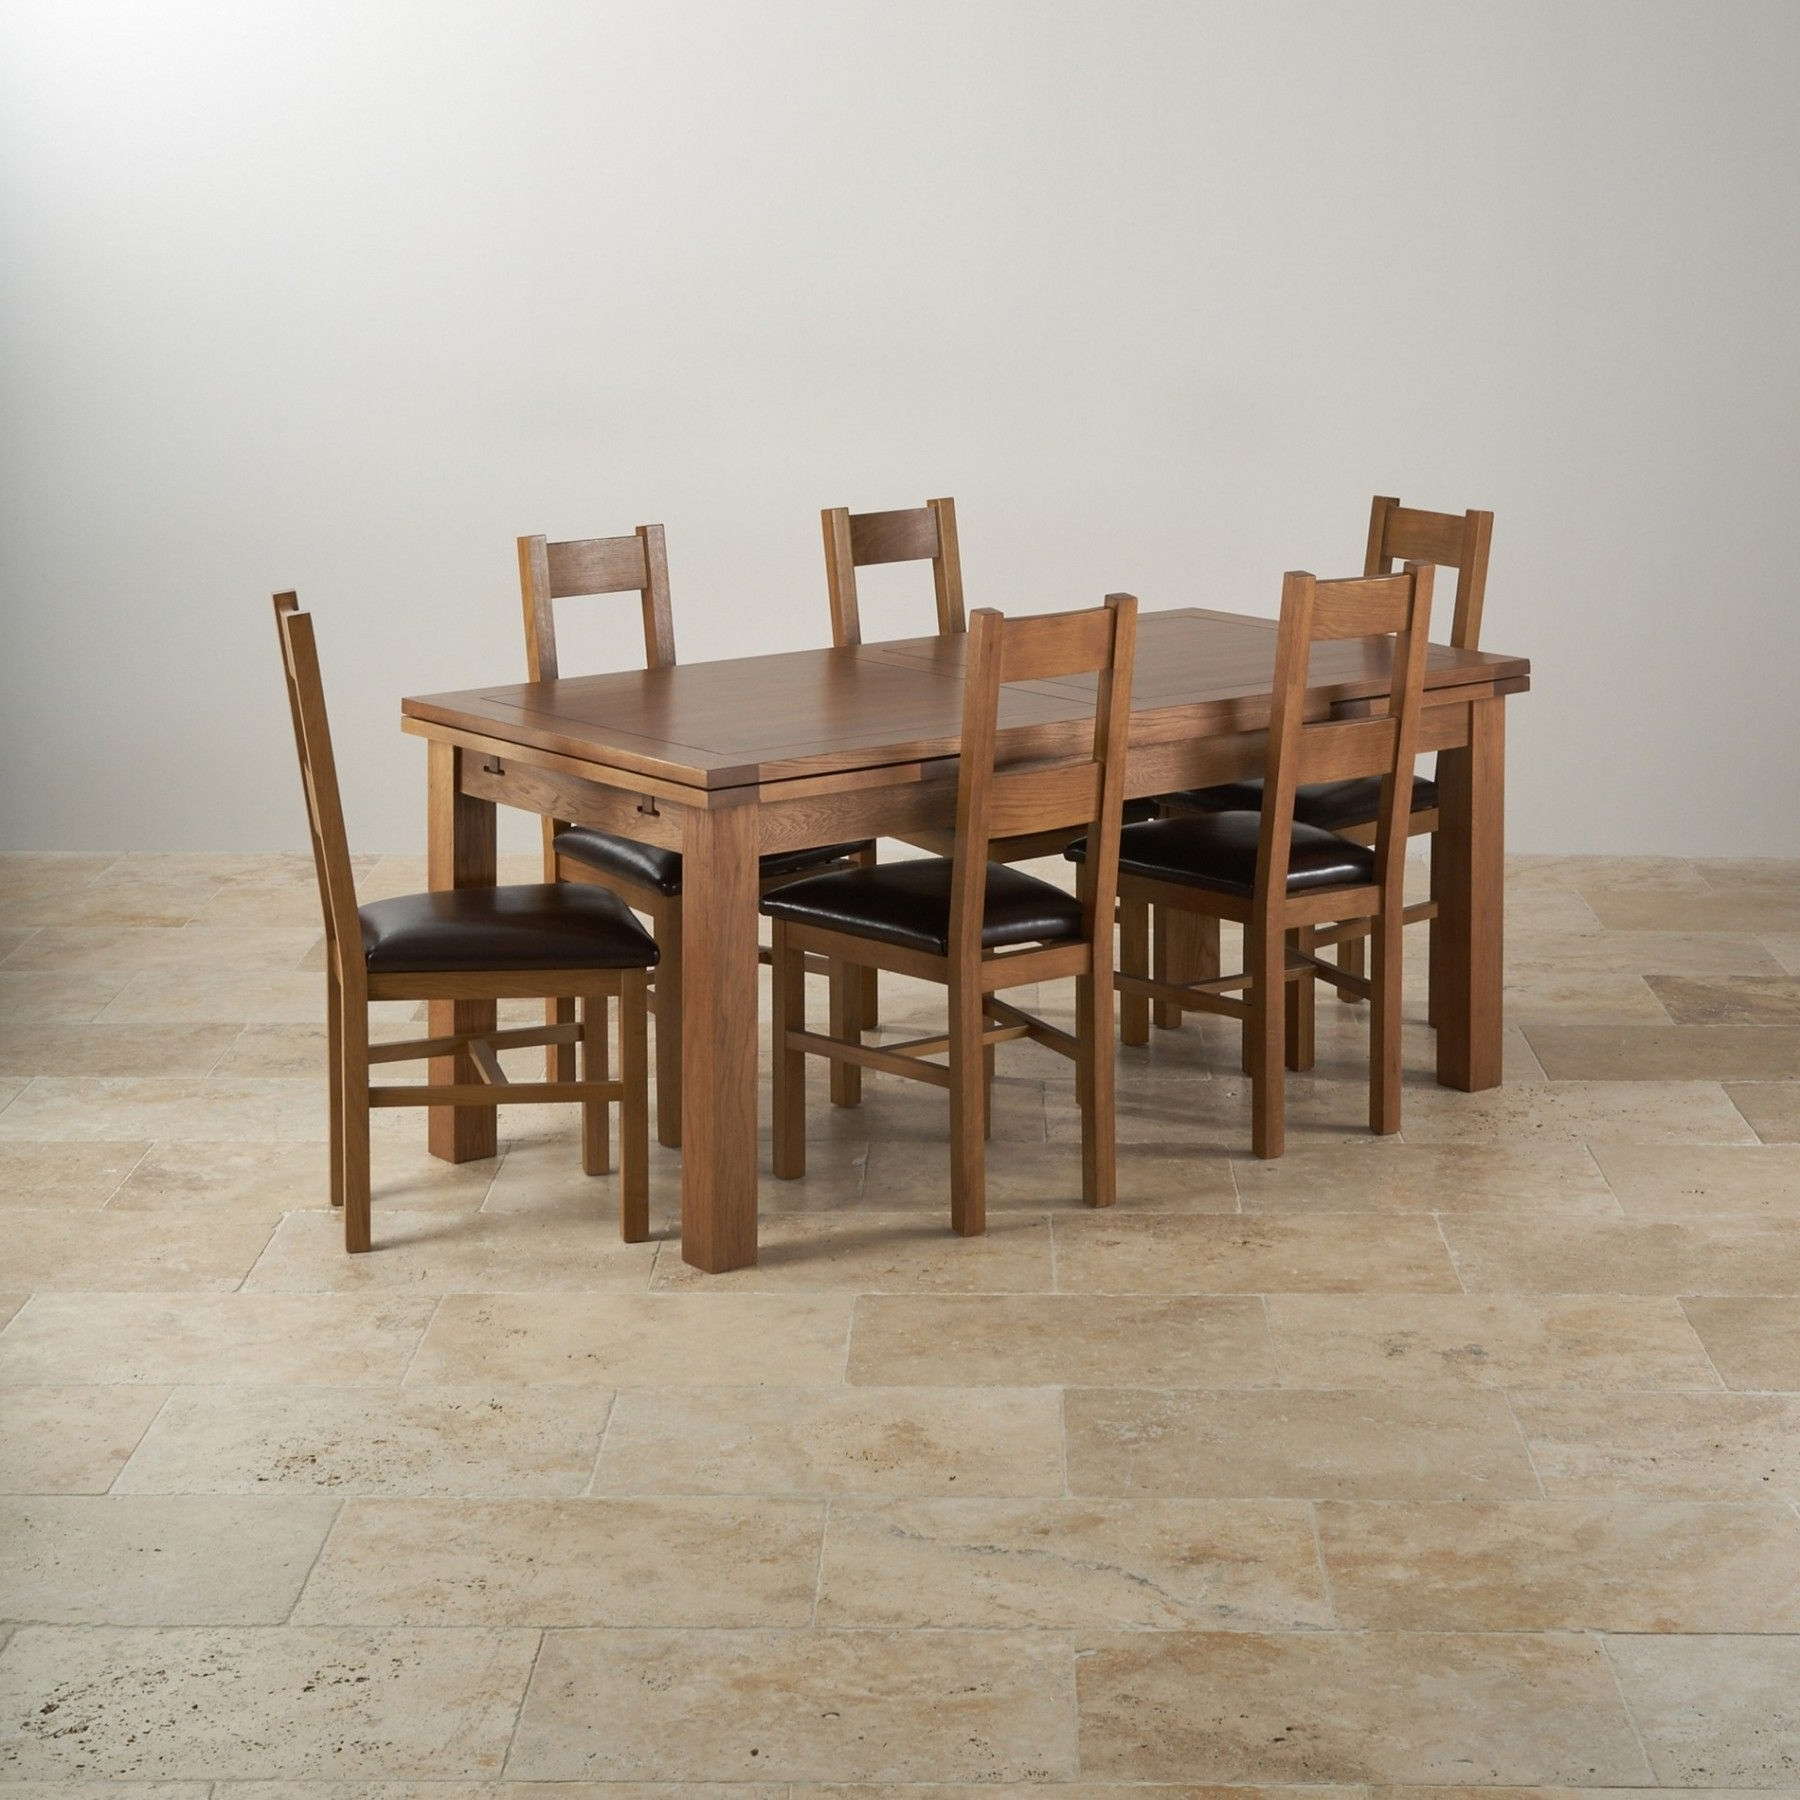 3Ft Dining Tables pertaining to Recent The Rustic Solid Oak 6Ft X 3Ft Extending Dining Table With Six